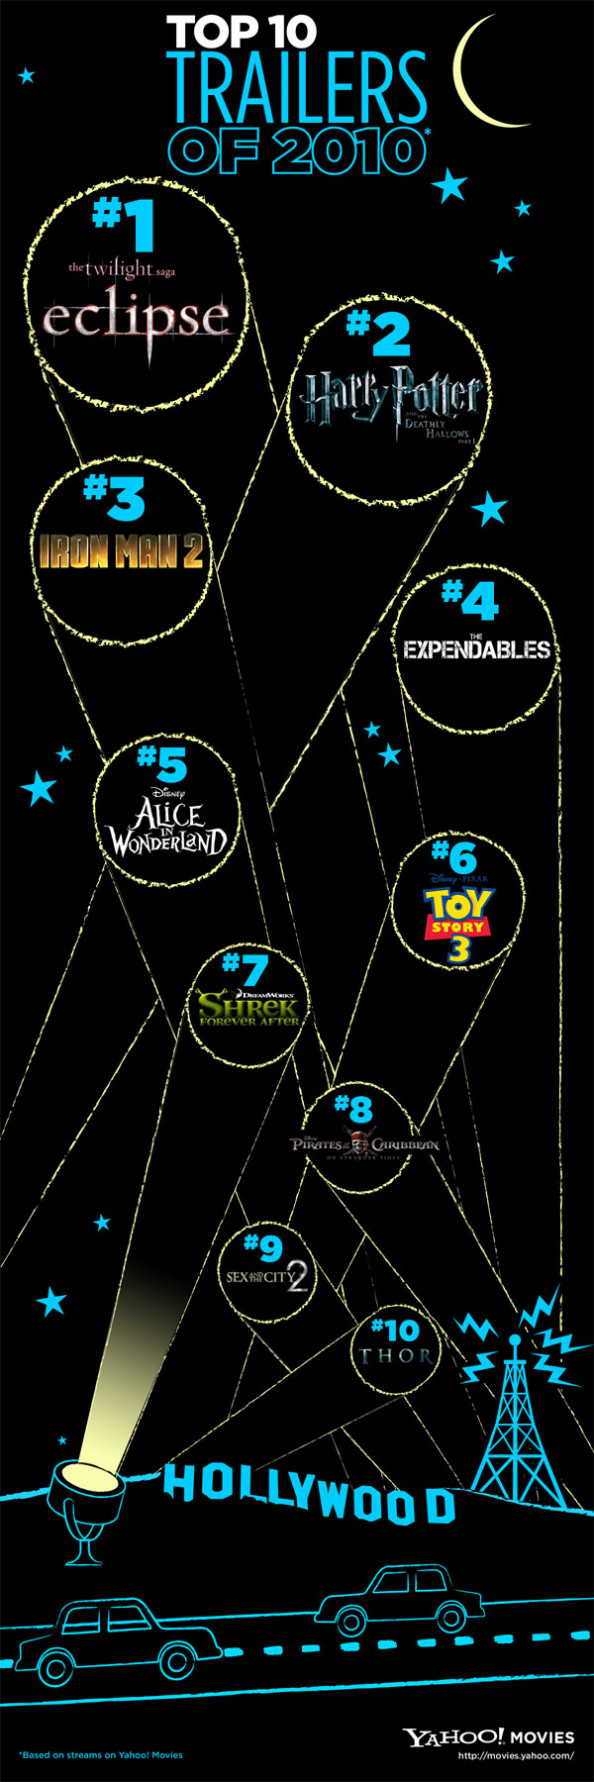 Top Trailers of 2010 Infographic